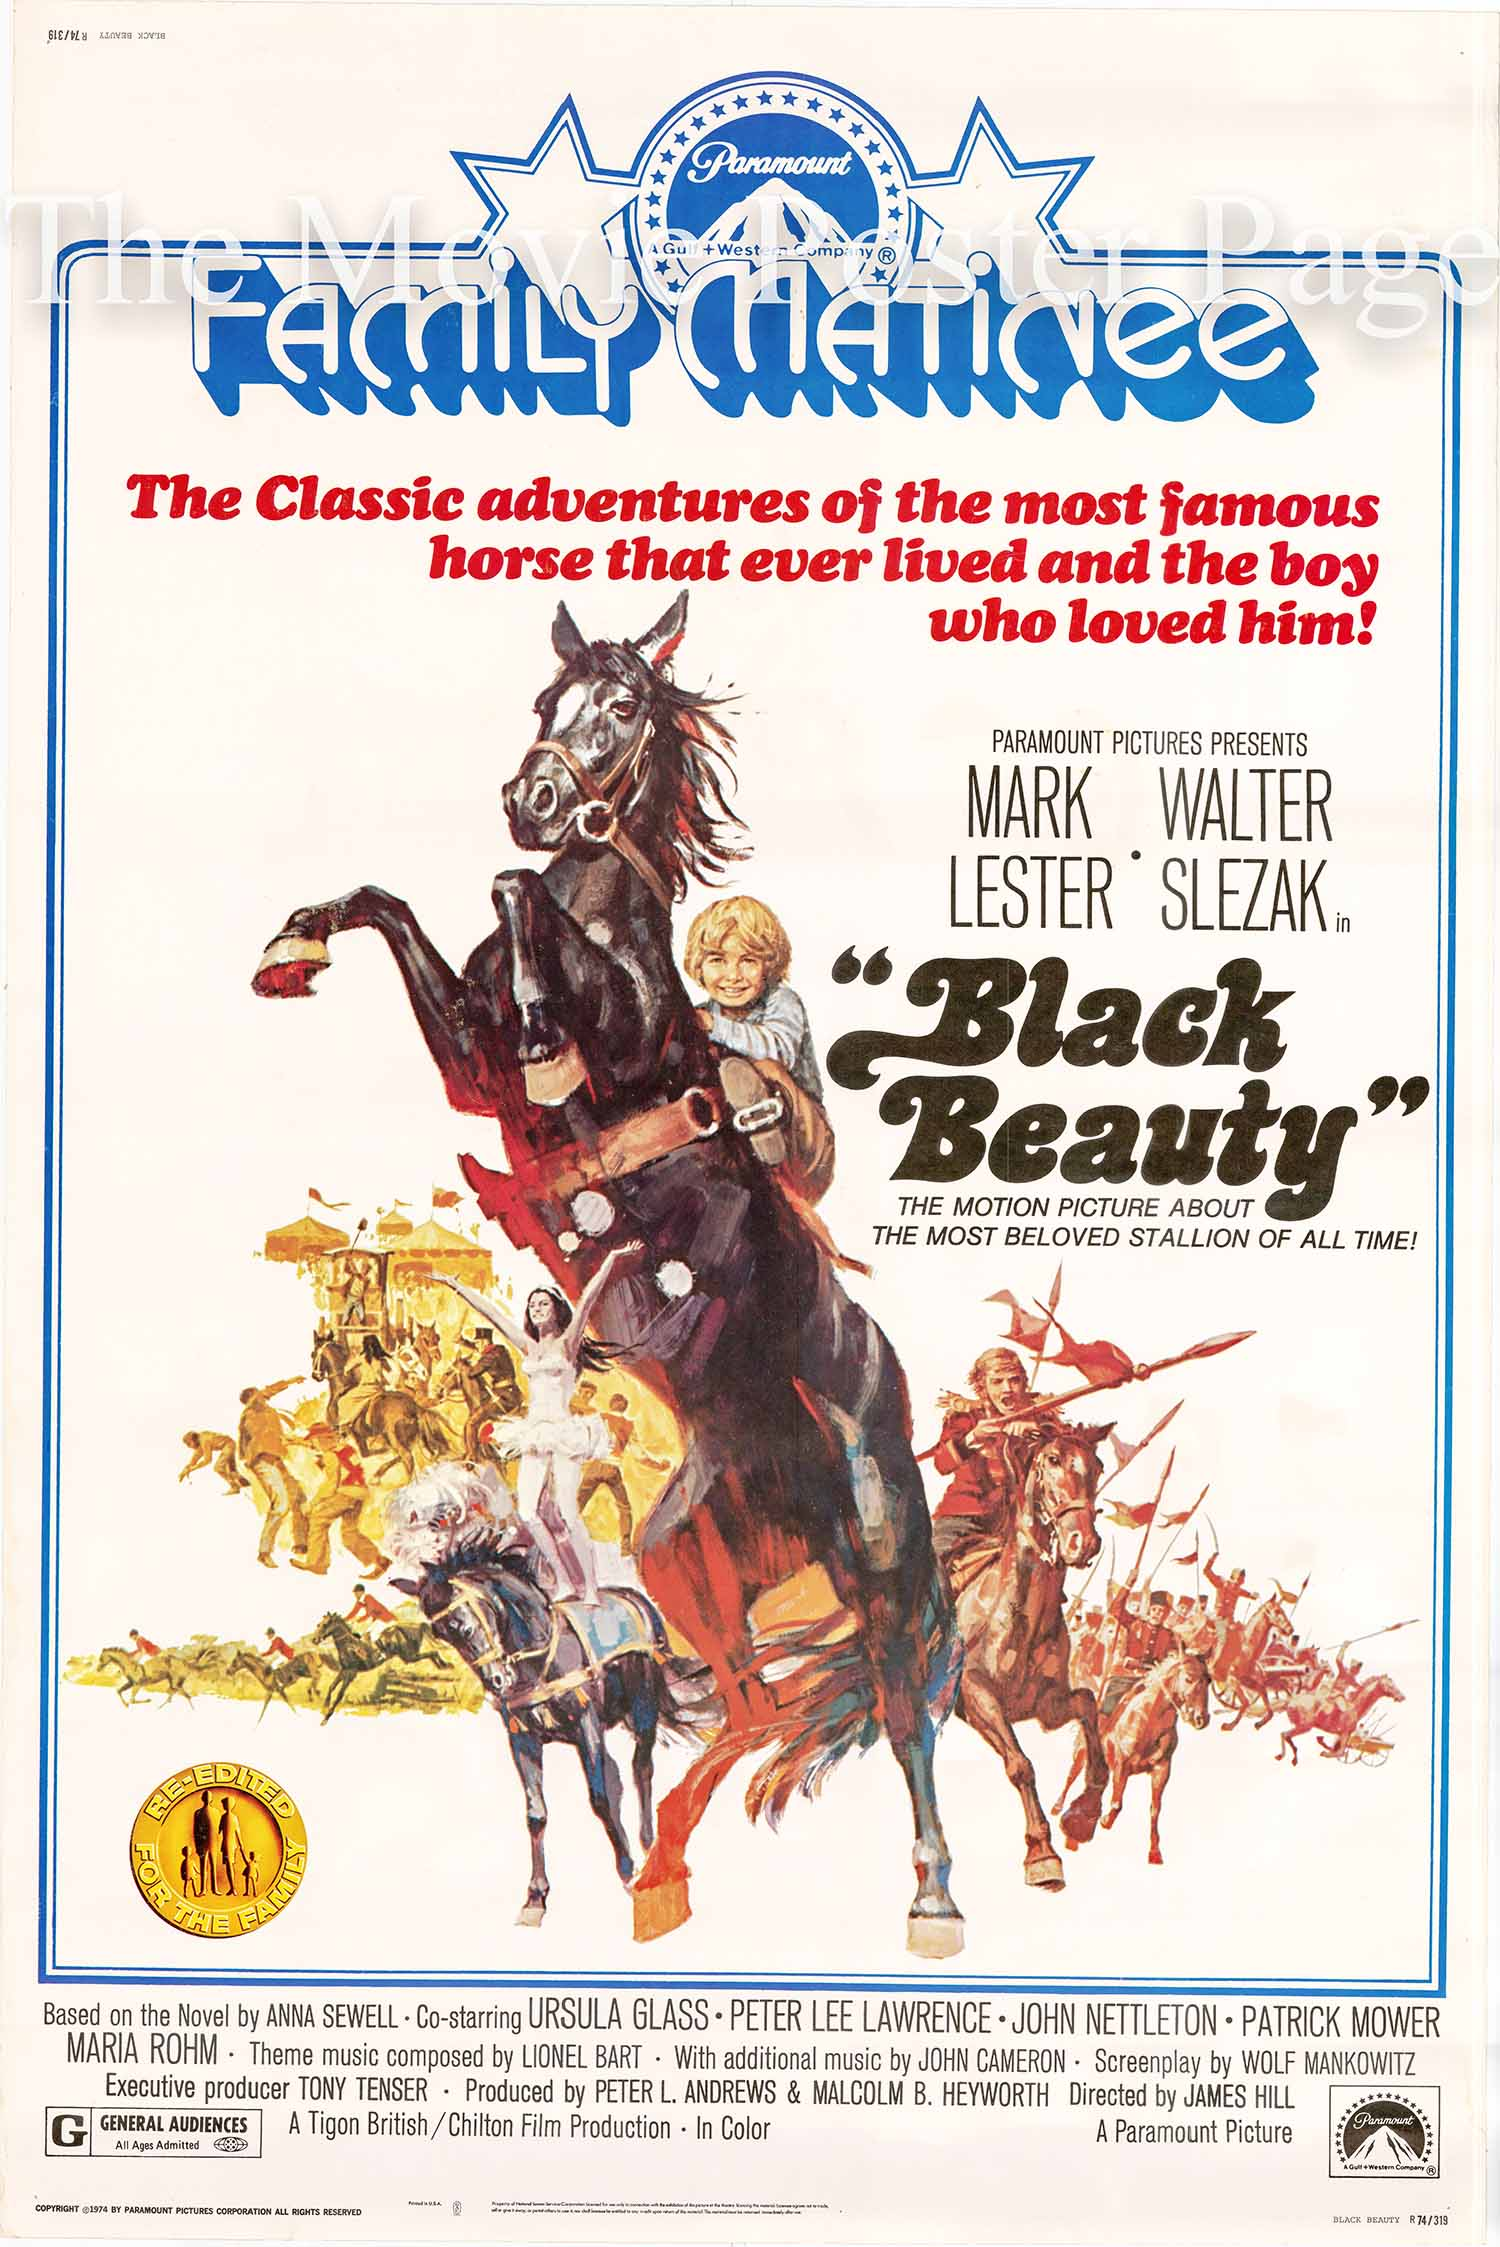 Pictured is a US 40x60 promotional poster for a 1974 rerelease of othe 1971 James Hill film Black Beauty starring Mark Lester.